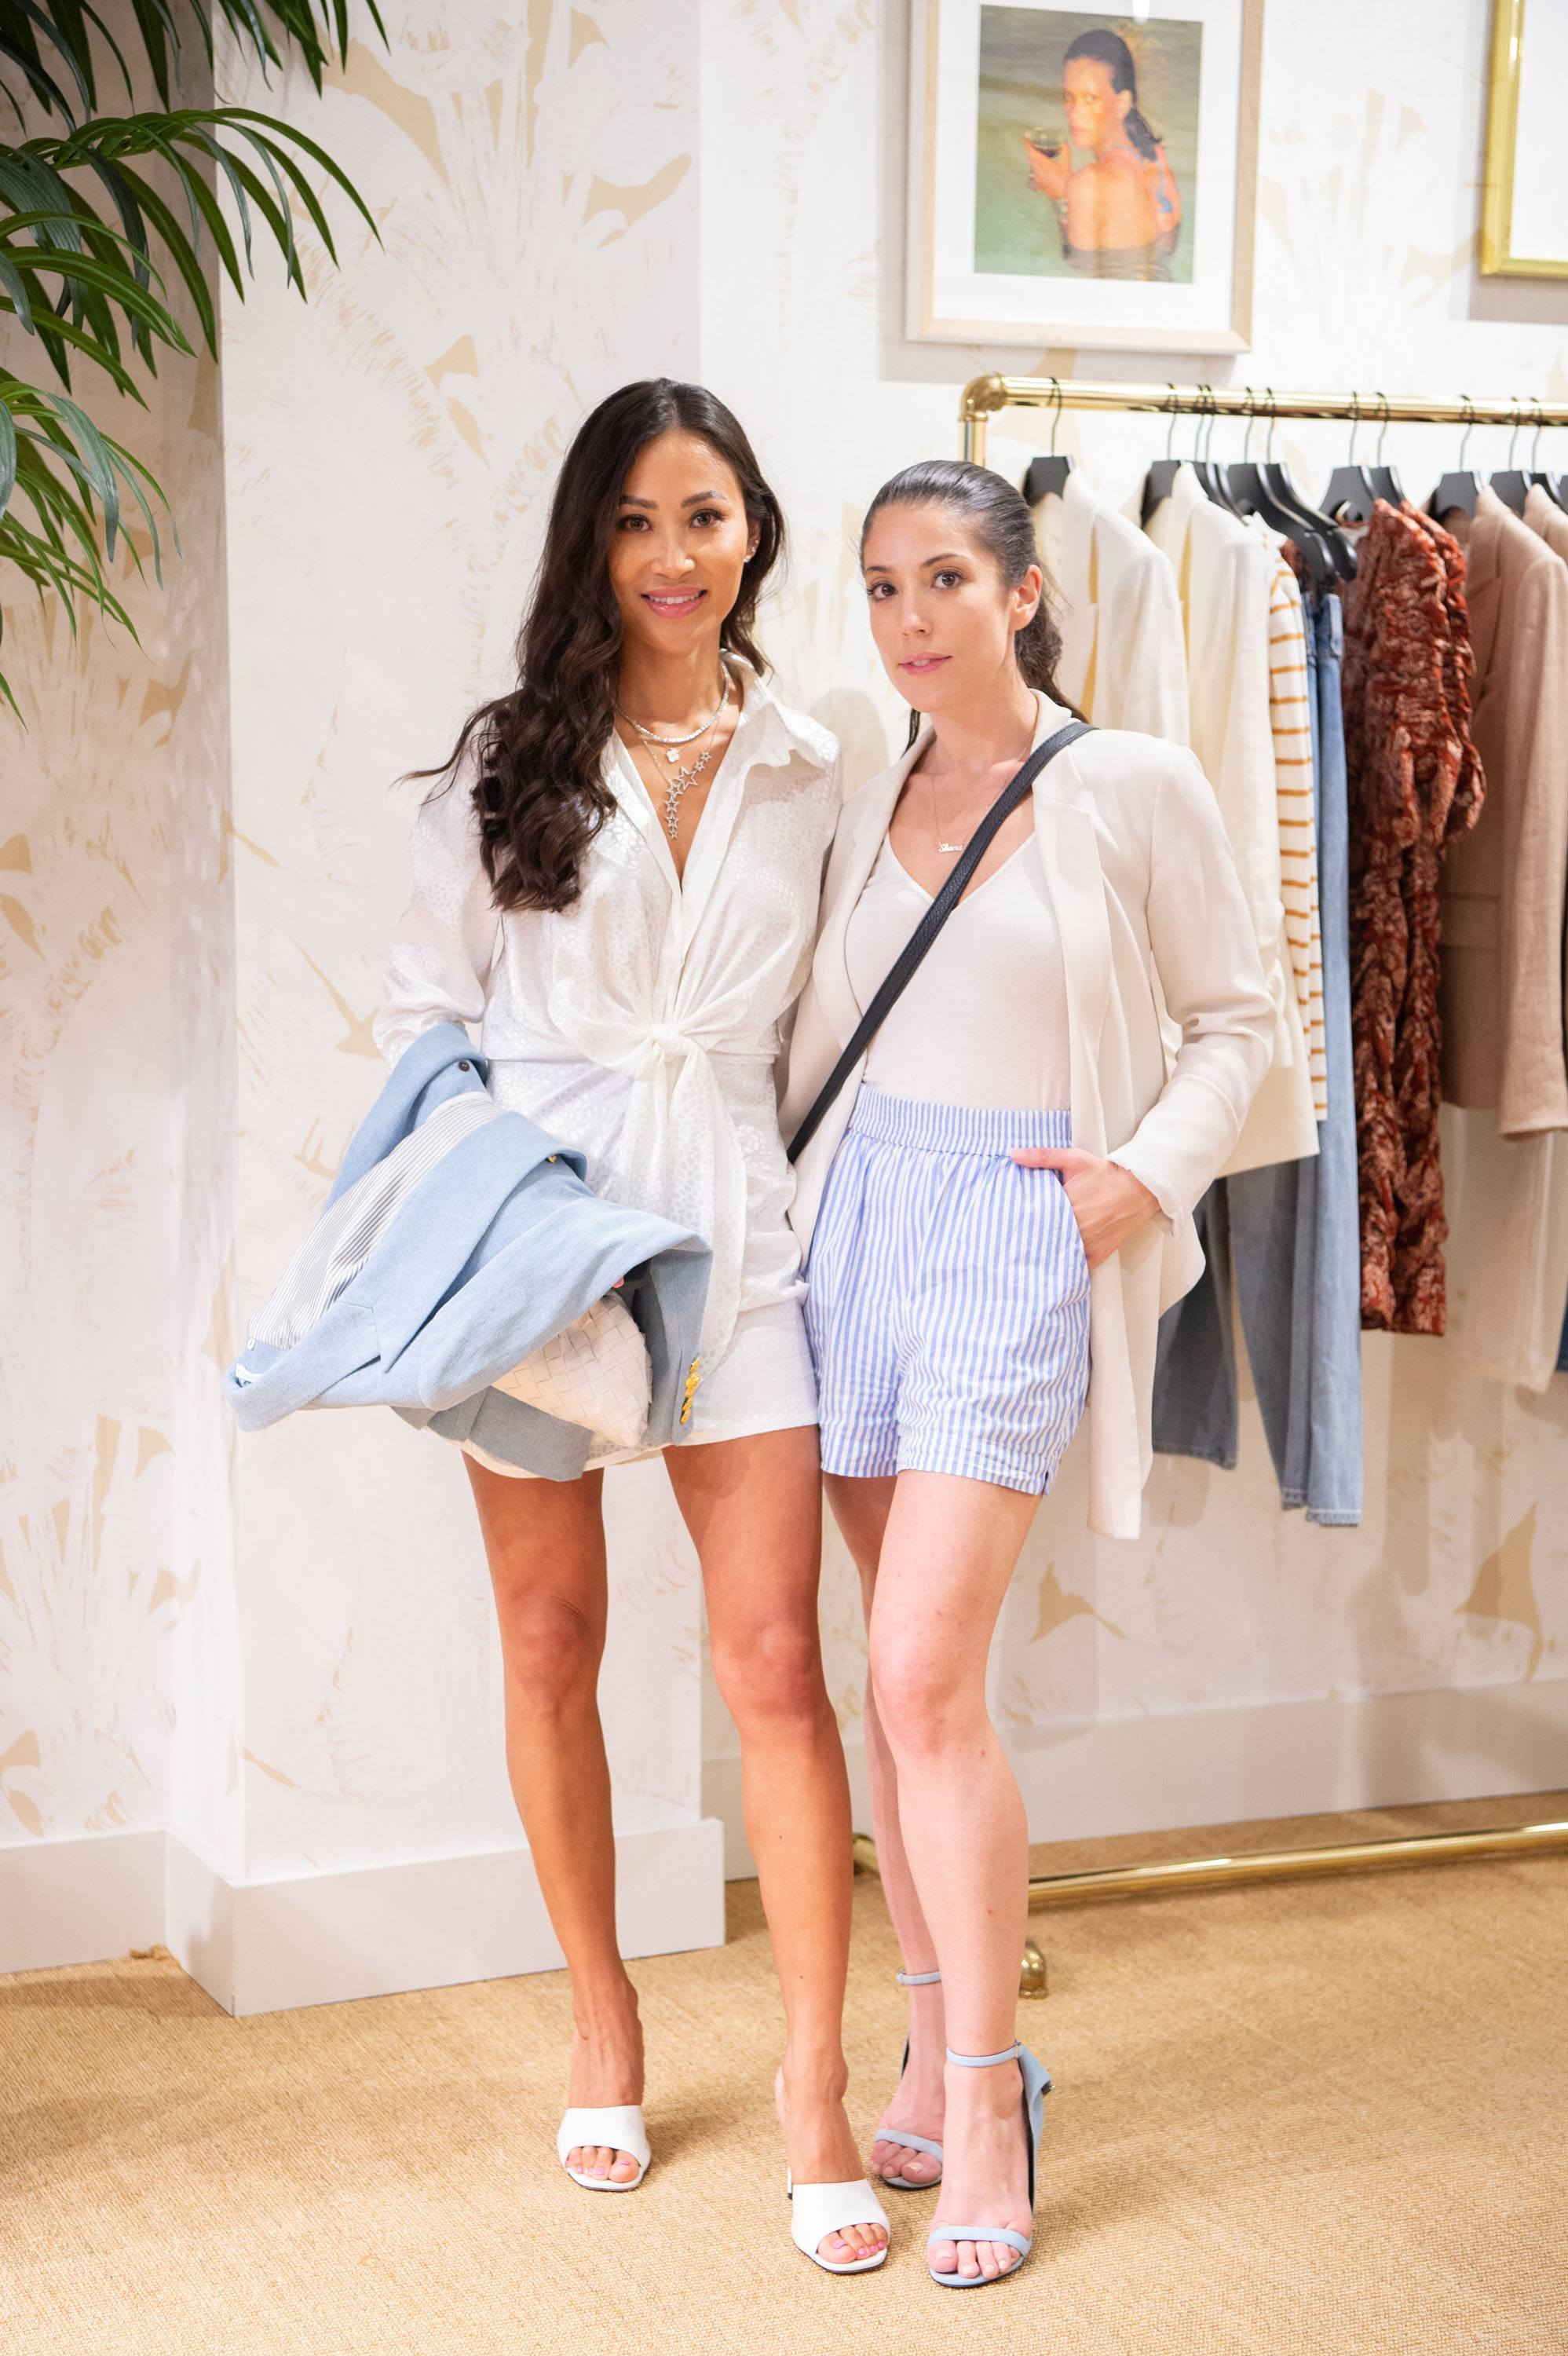 Two women pose for a photo in front of a merchandise rack inside the Veronica Beard store